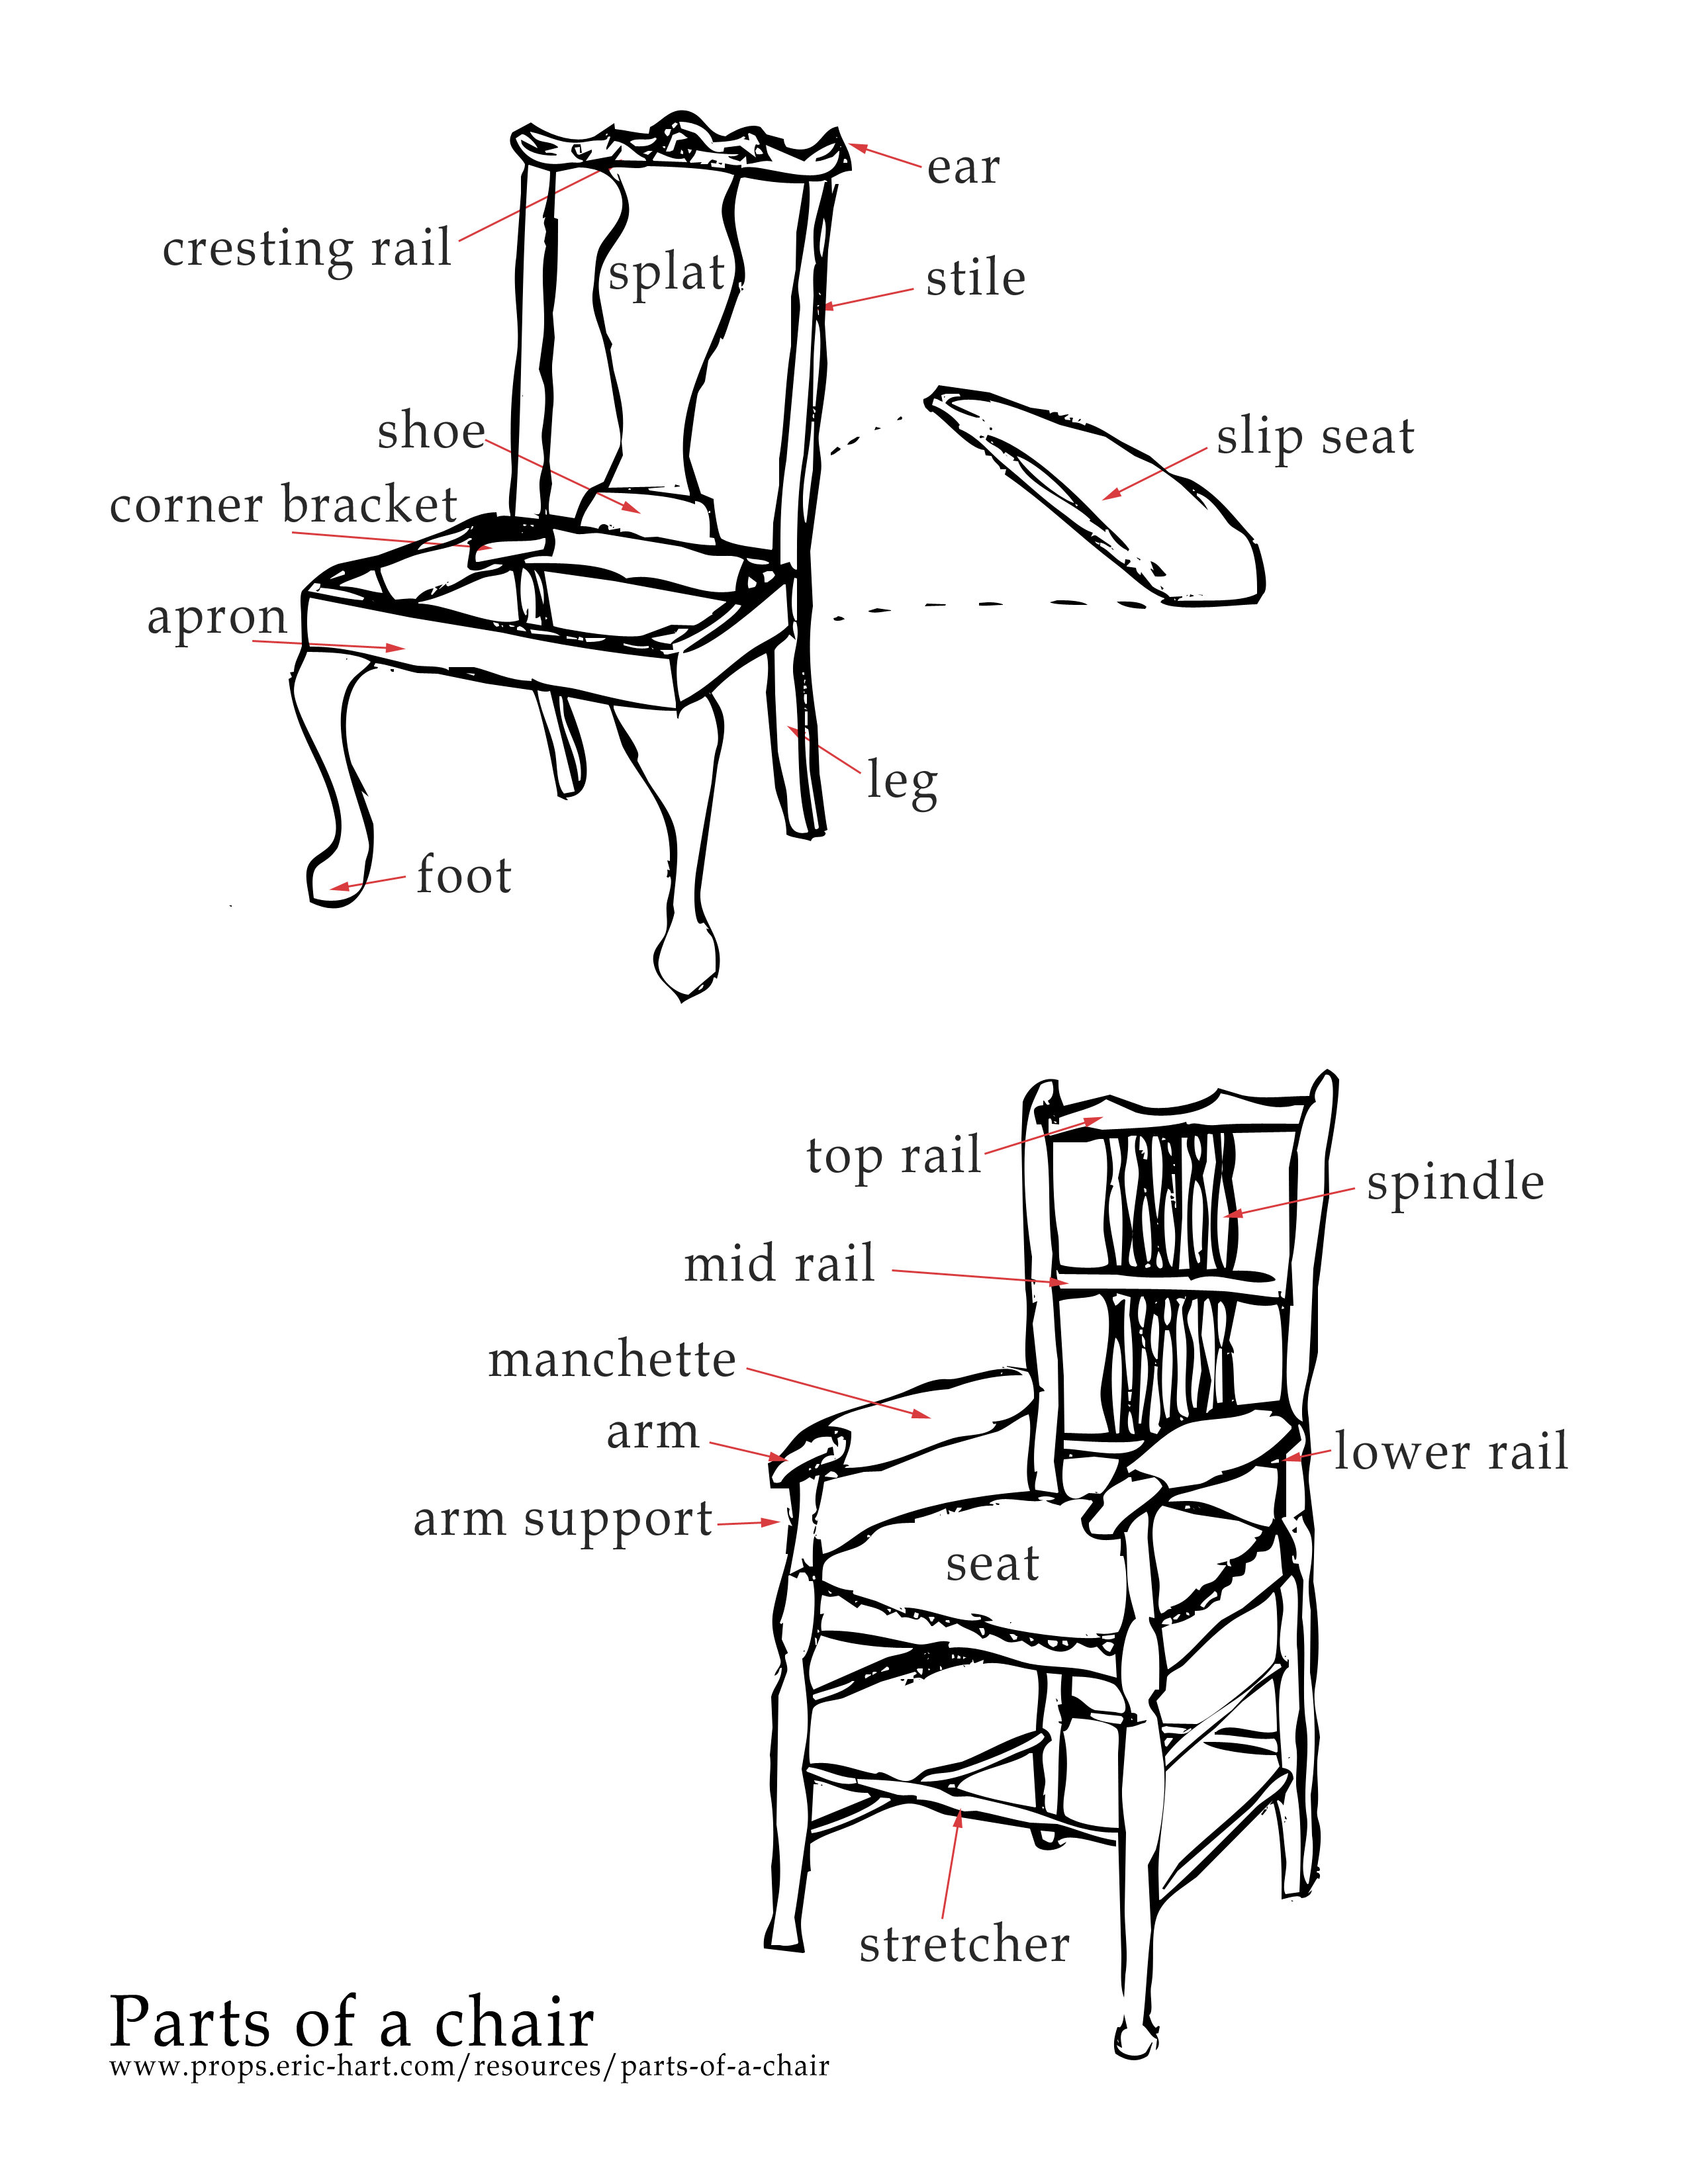 Parts Of A Chair